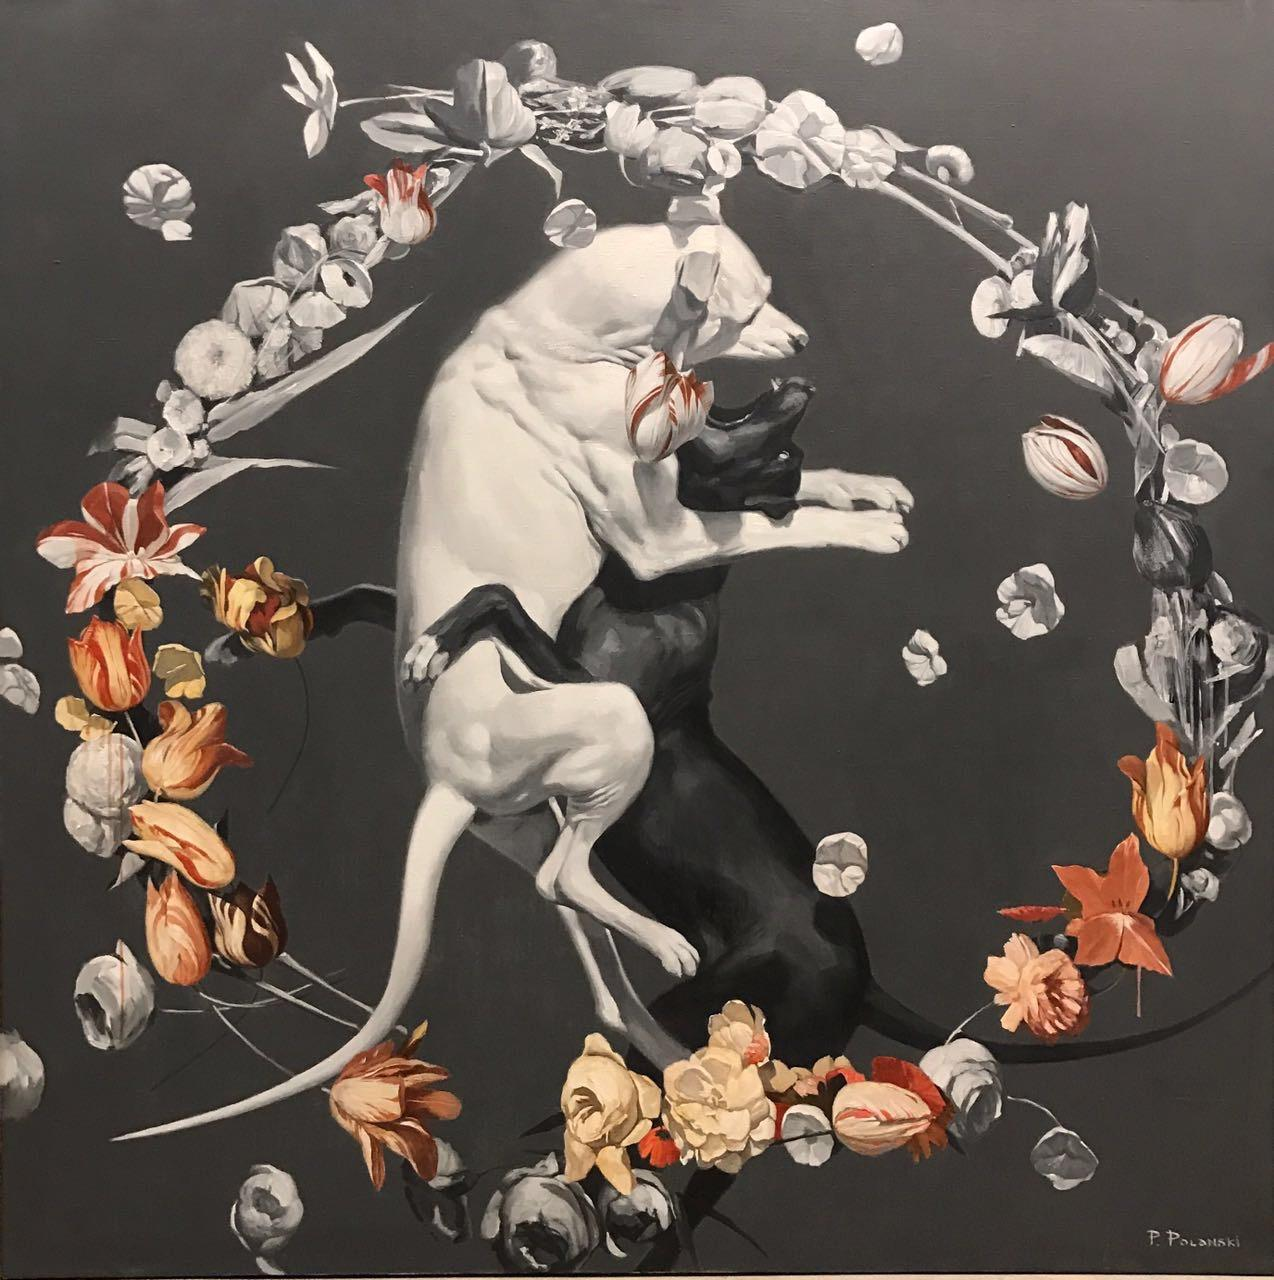 Night-dogs fighting (flowers), made in grey, red, orange, black and white color